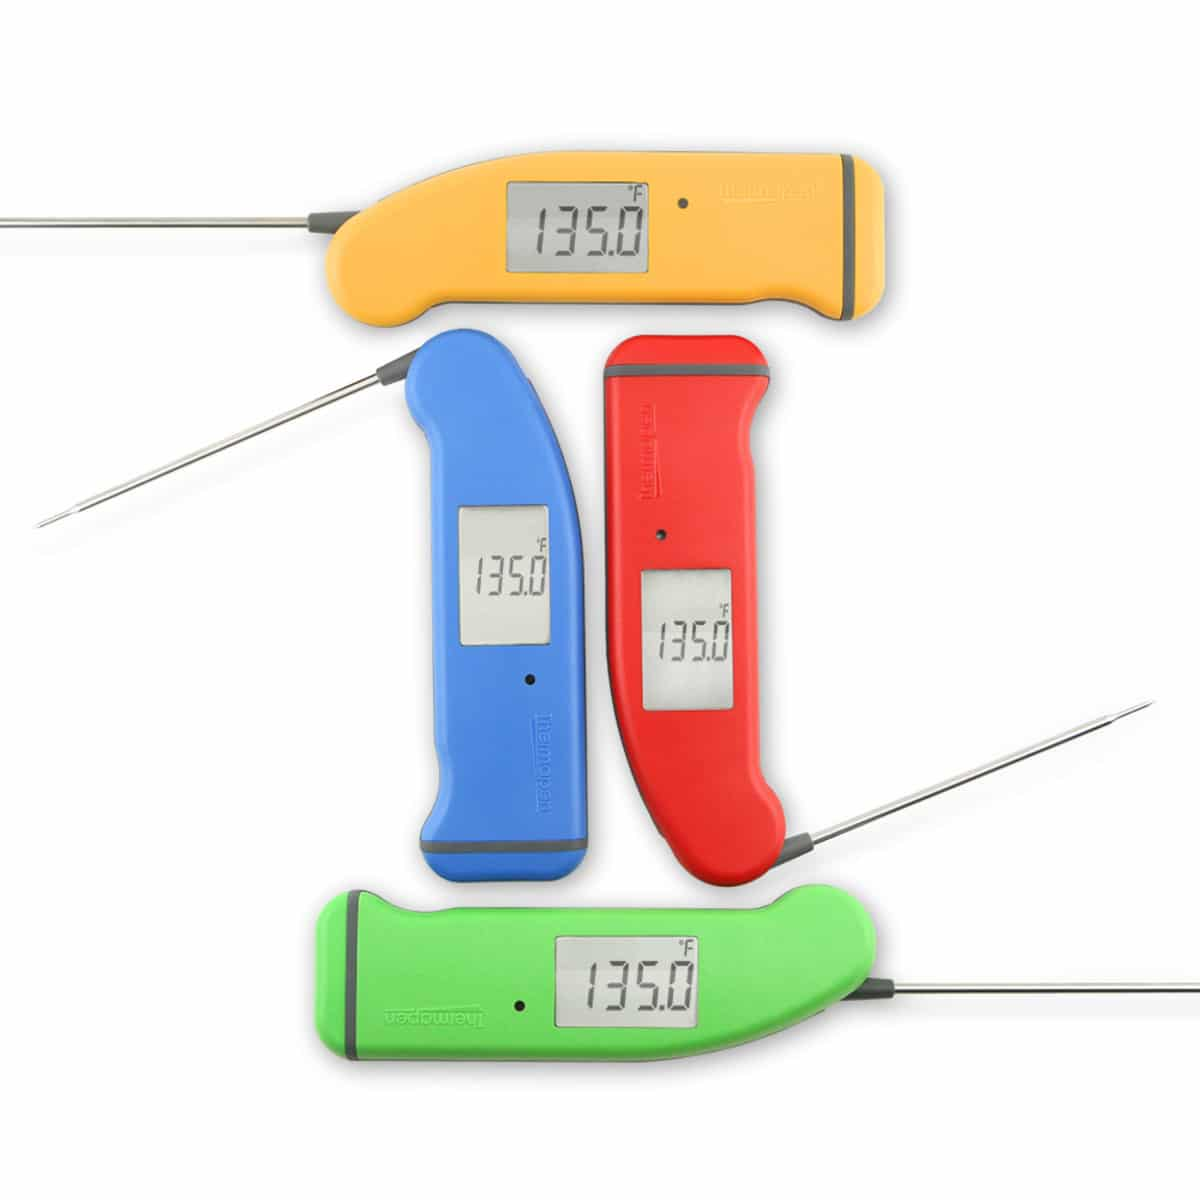 Thermapen MK4 Meat Thermometer